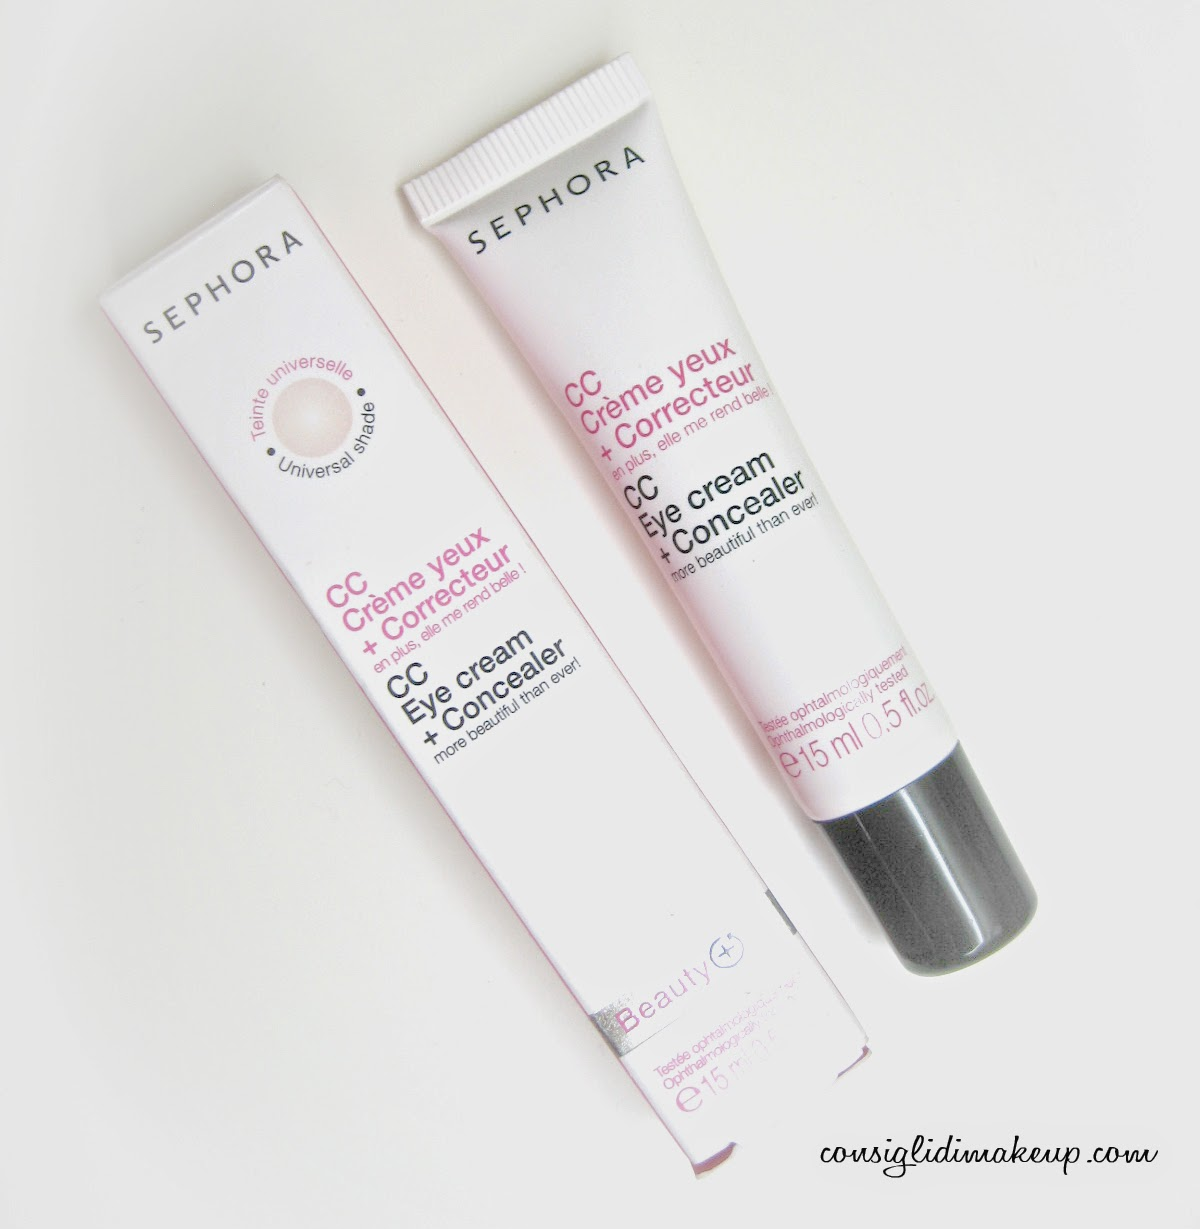 cc eye cream concealer